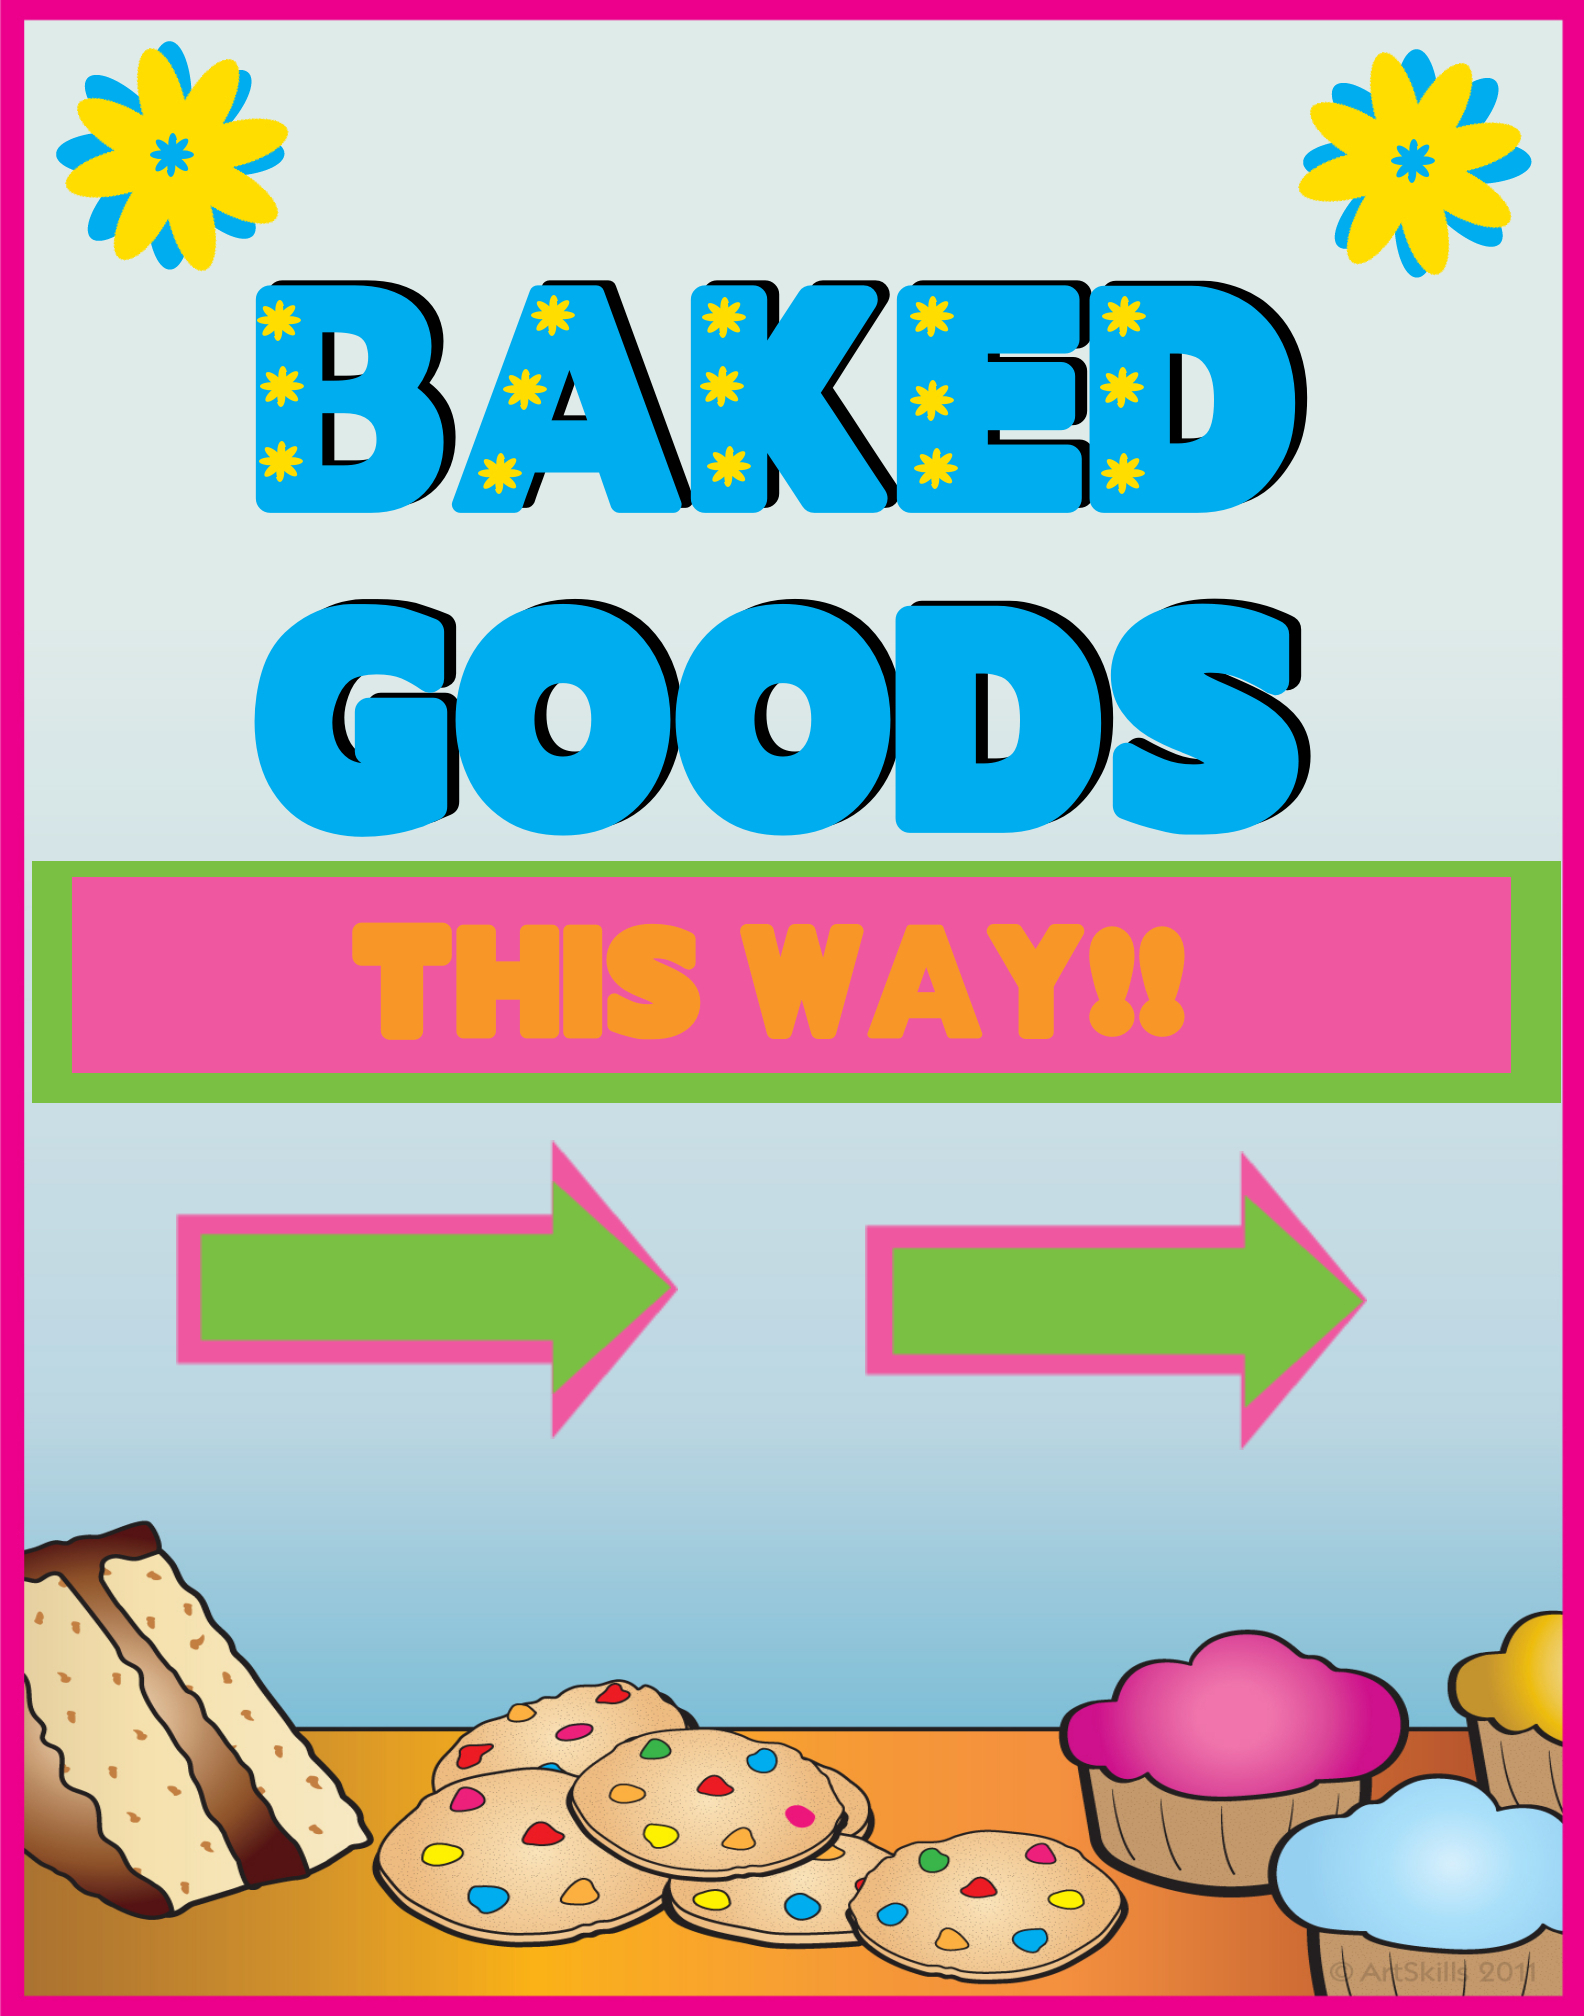 printable bake flyers co online poster gallery poster project ideas poster making pin printable bake flyers pic 13 cake